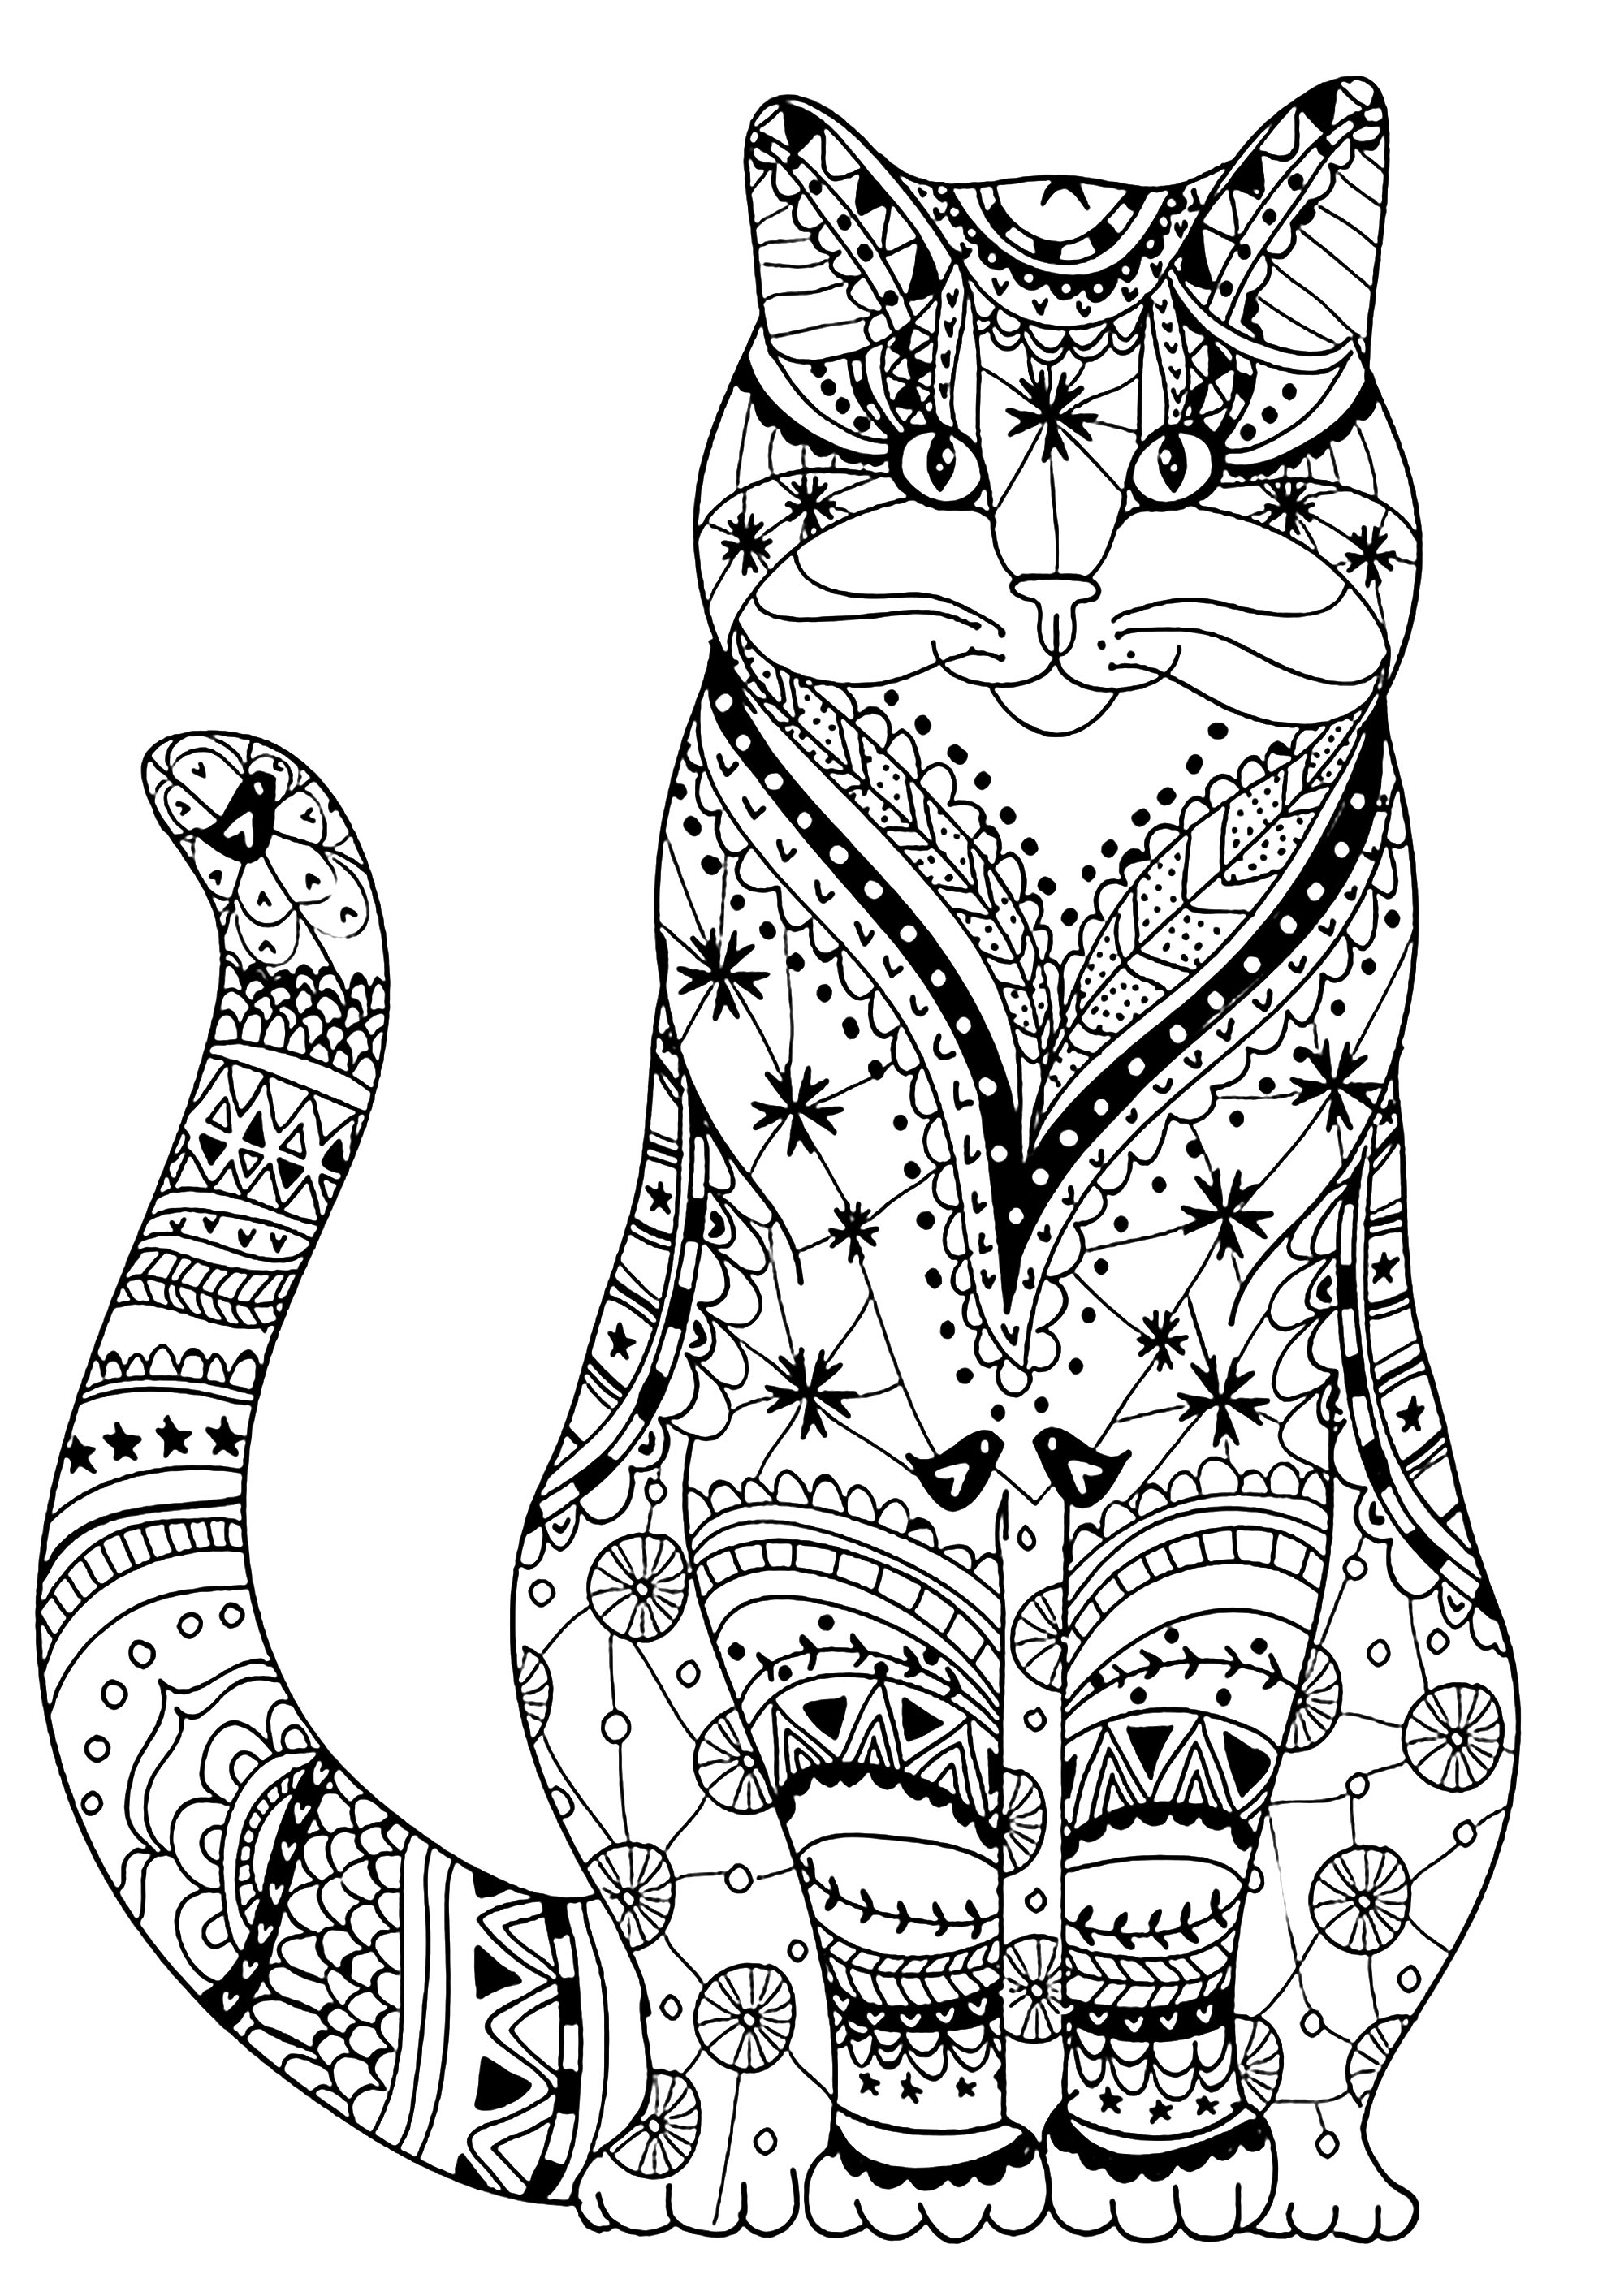 coloring image of cat a simple drawing of kitty cat coloring page kids play color cat of coloring image